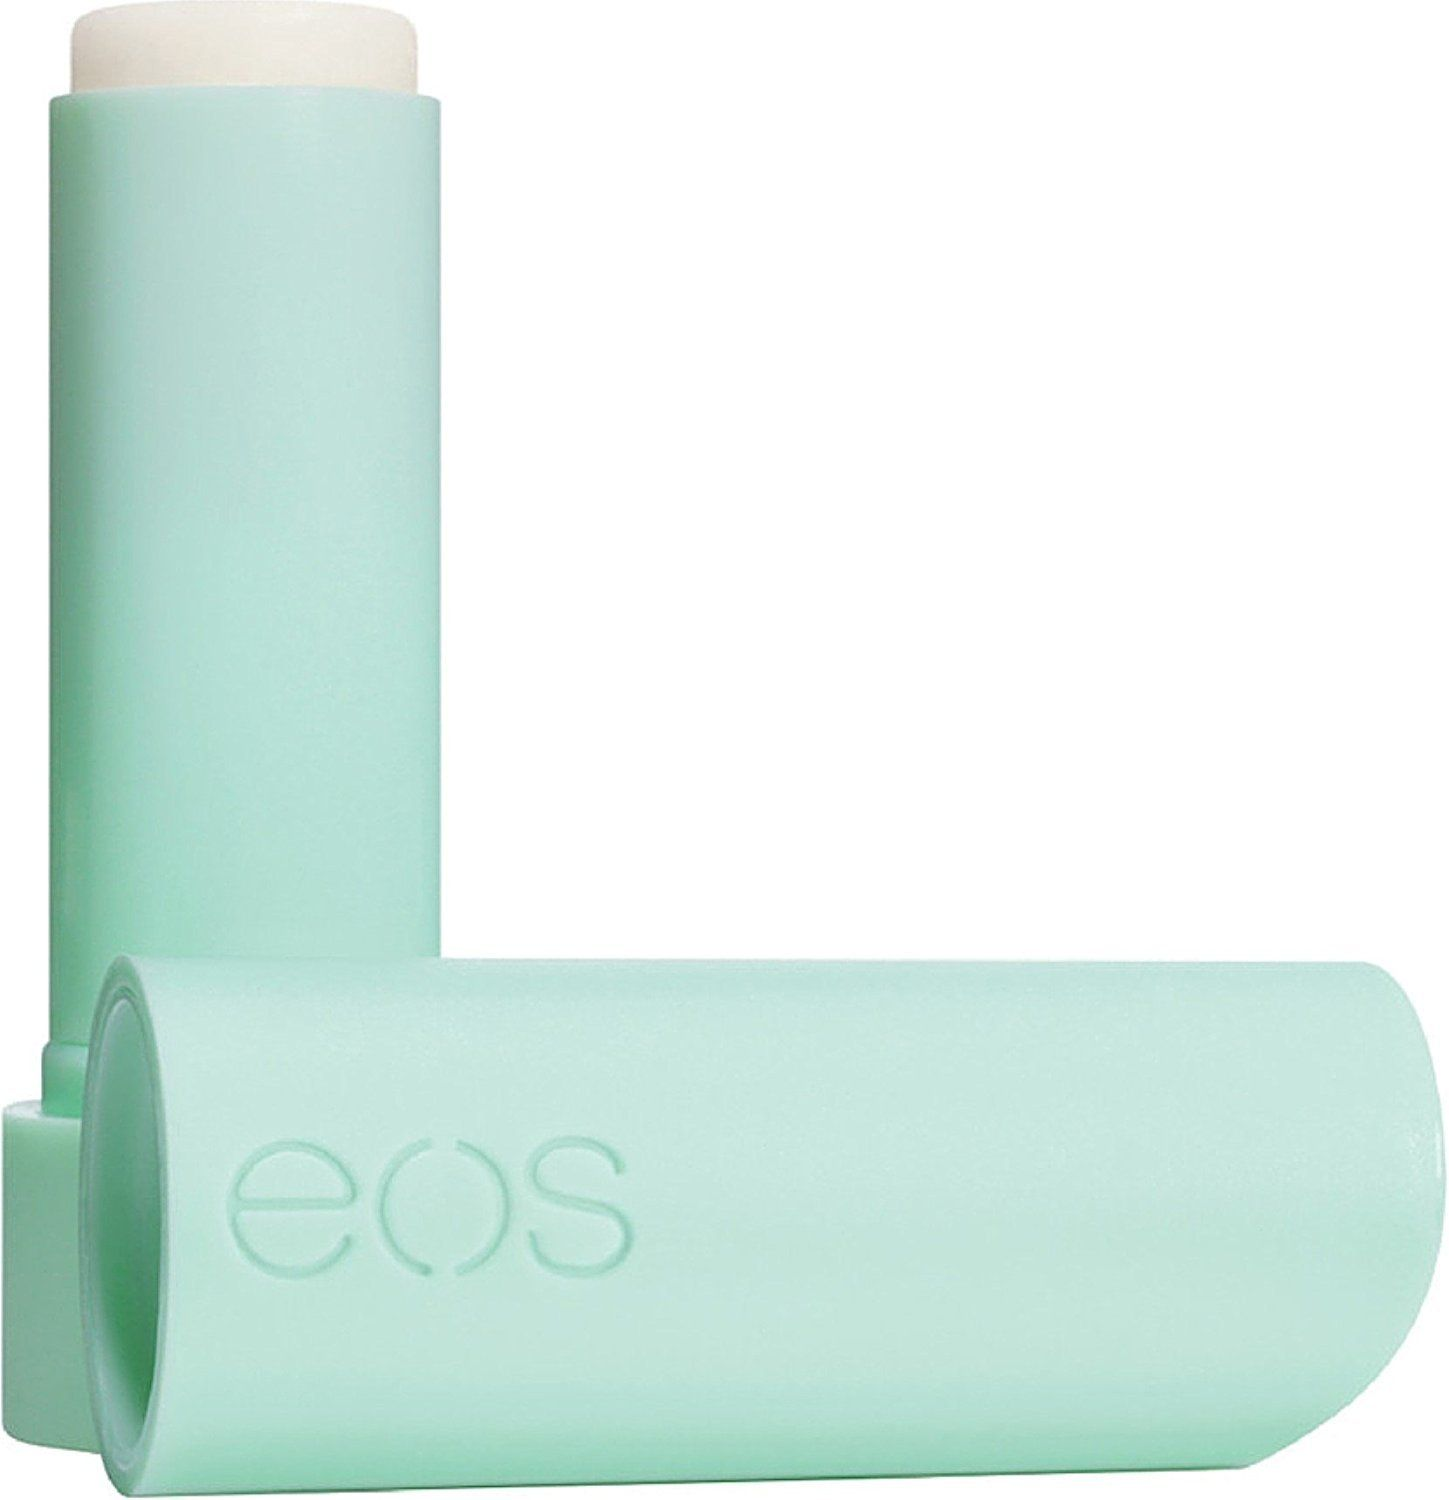 Eos Lip Balm Stick Sweet Mint 0 14 Oz Pack Of 6 See This Great Product This Is An Affiliate Link Eos Lip Balm Lip Balm Stick Balm Stick [ 1500 x 1449 Pixel ]